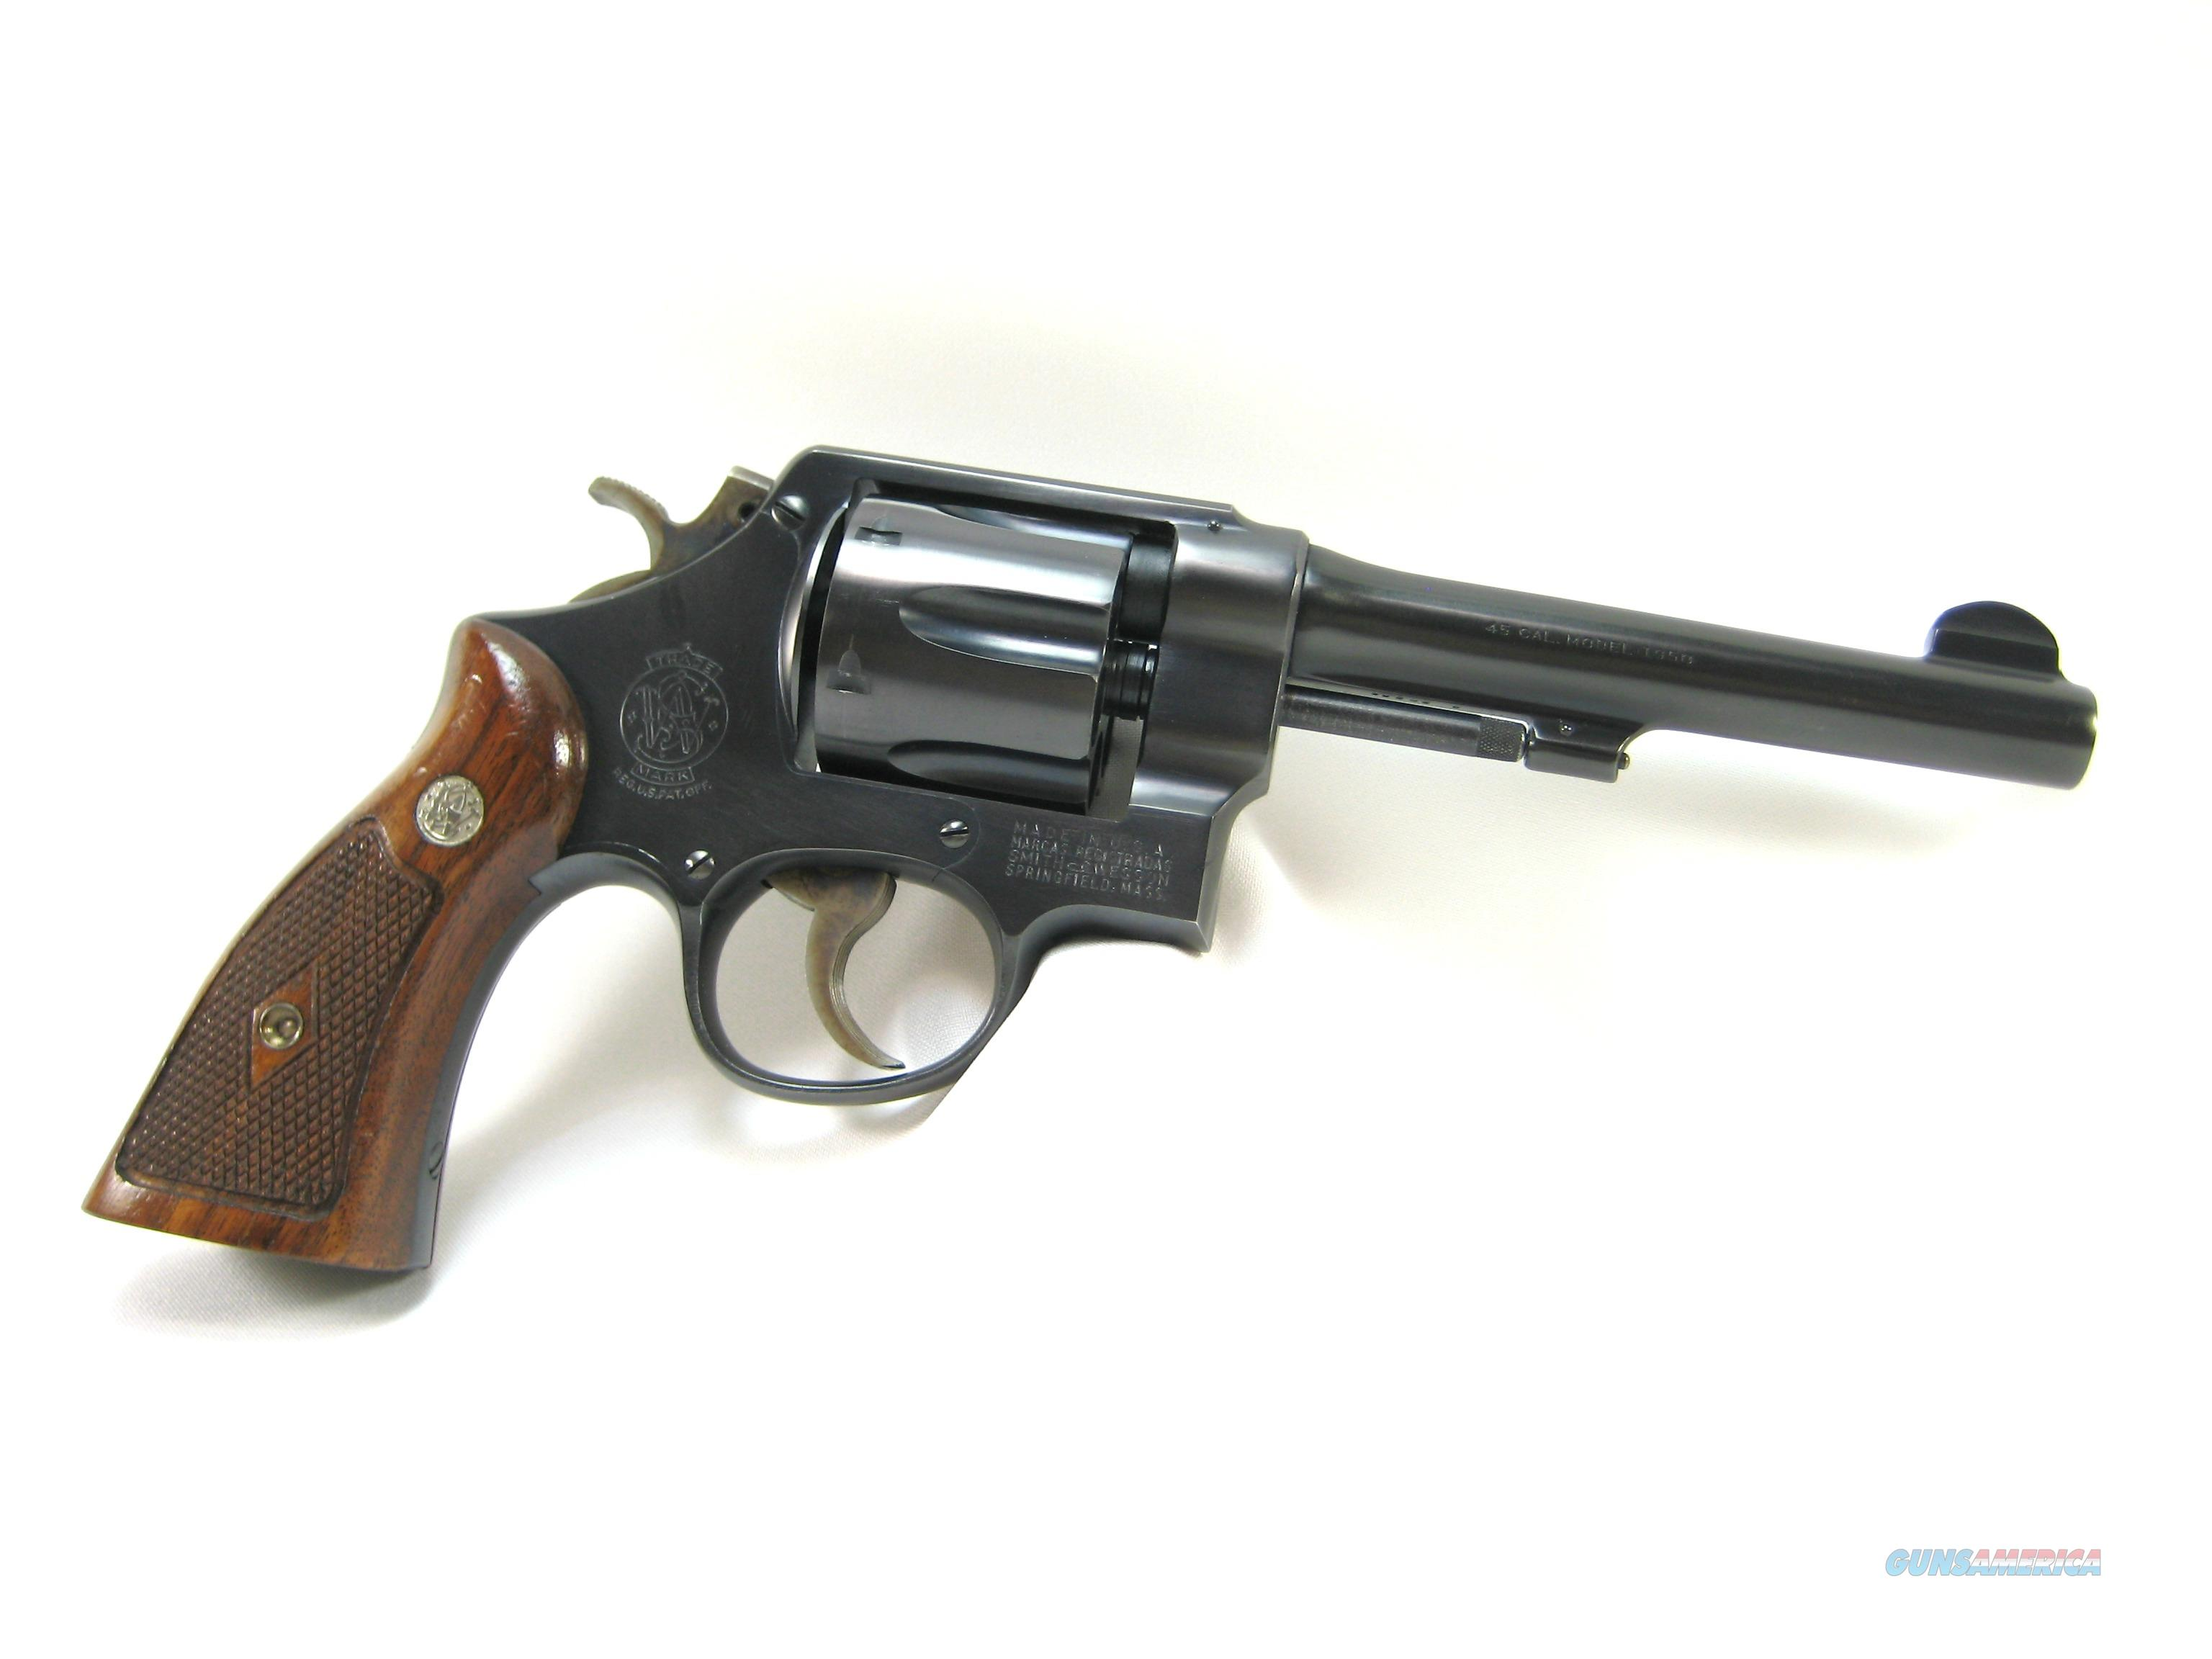 S&W .45 1950 Army Model / Pre Model 22 / High C... for sale